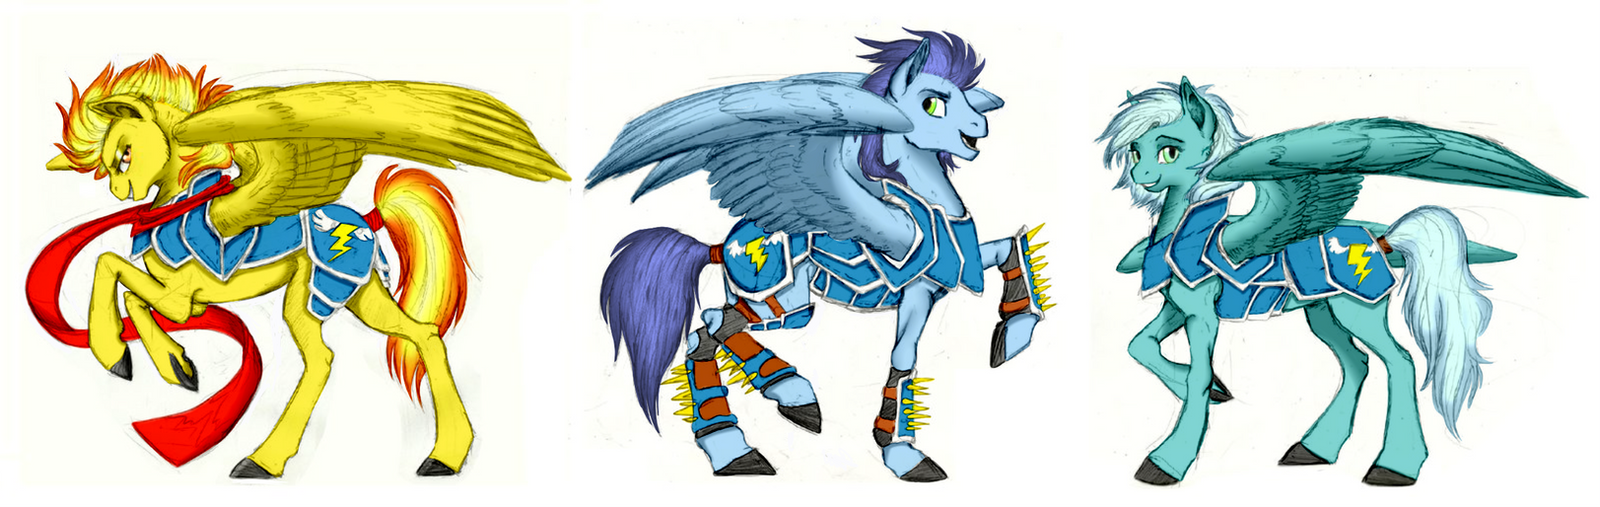 My little pony wonderbolts coloring pages - The Wonderbolts By Earthsong9405 The Wonderbolts By Earthsong9405